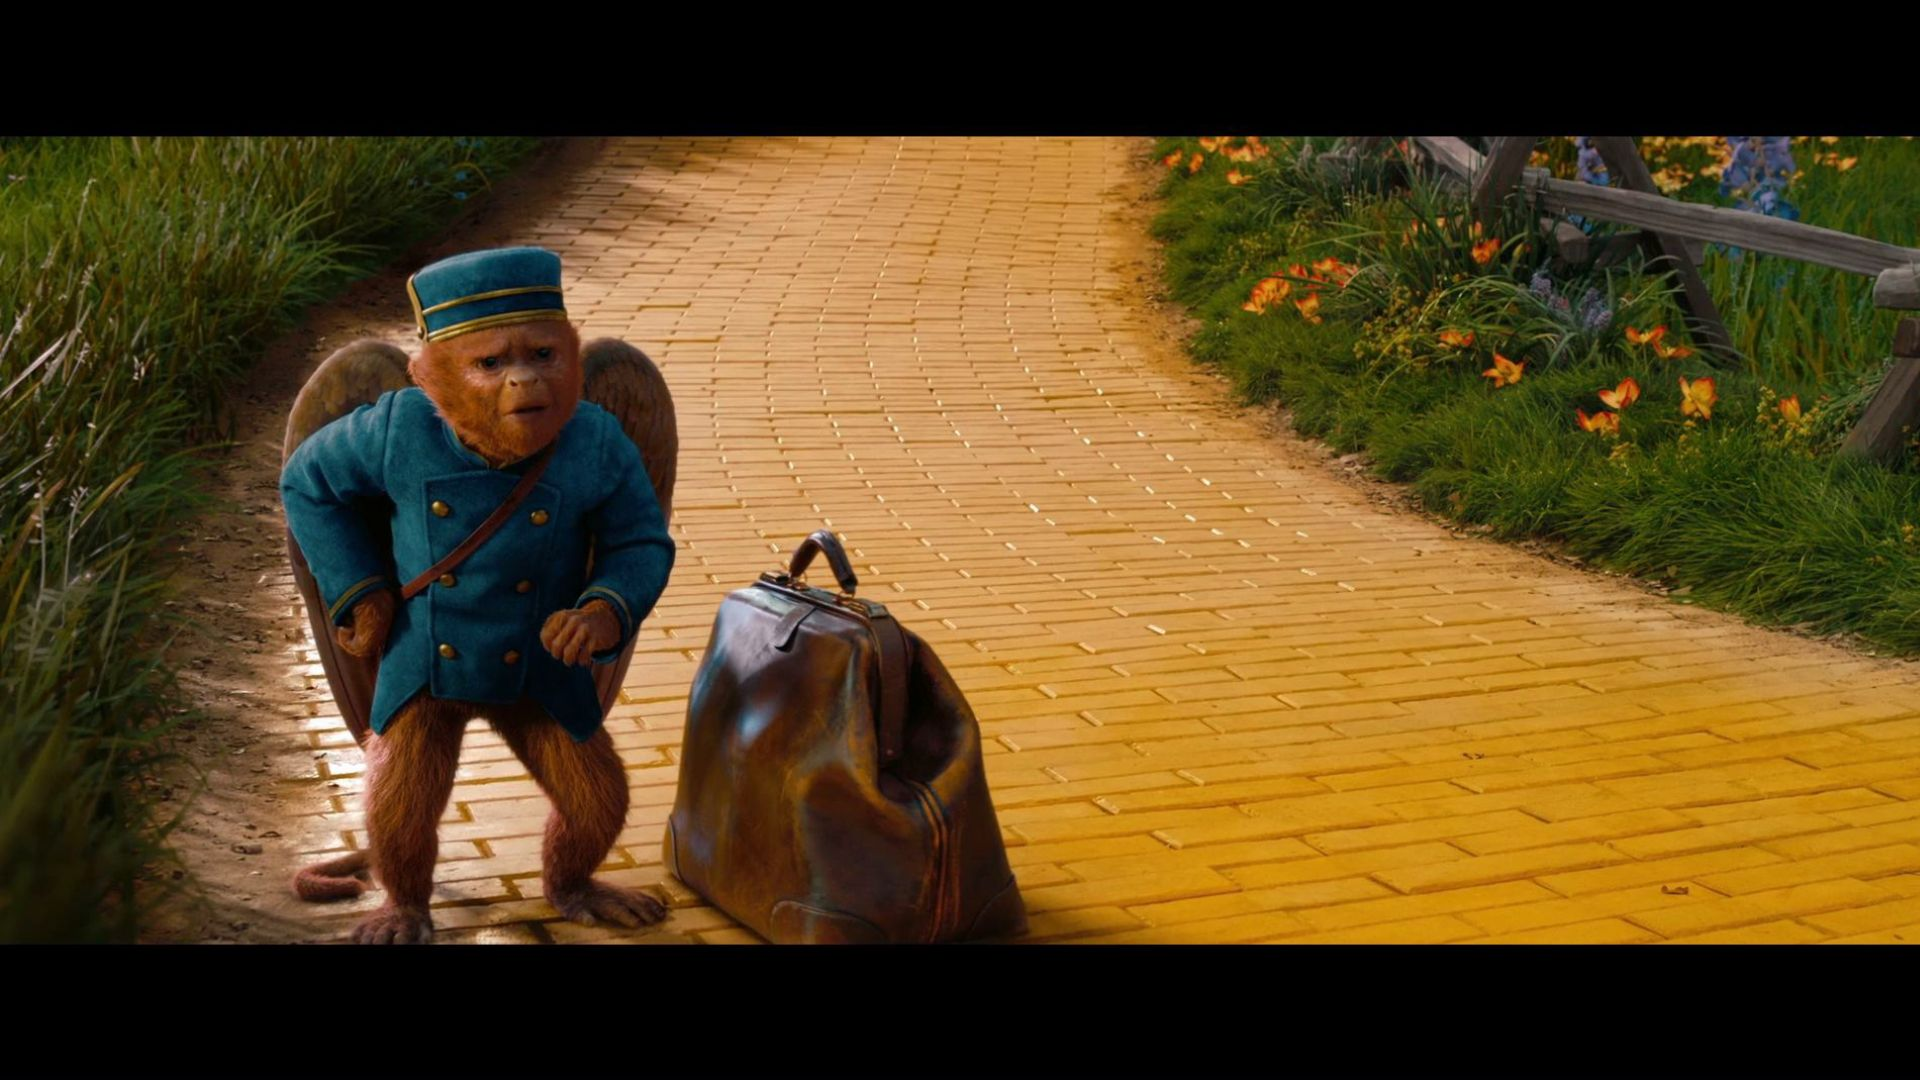 You don't like bananas? Of course I love bananas. I'm a monkey. Oz the Great and Powerful